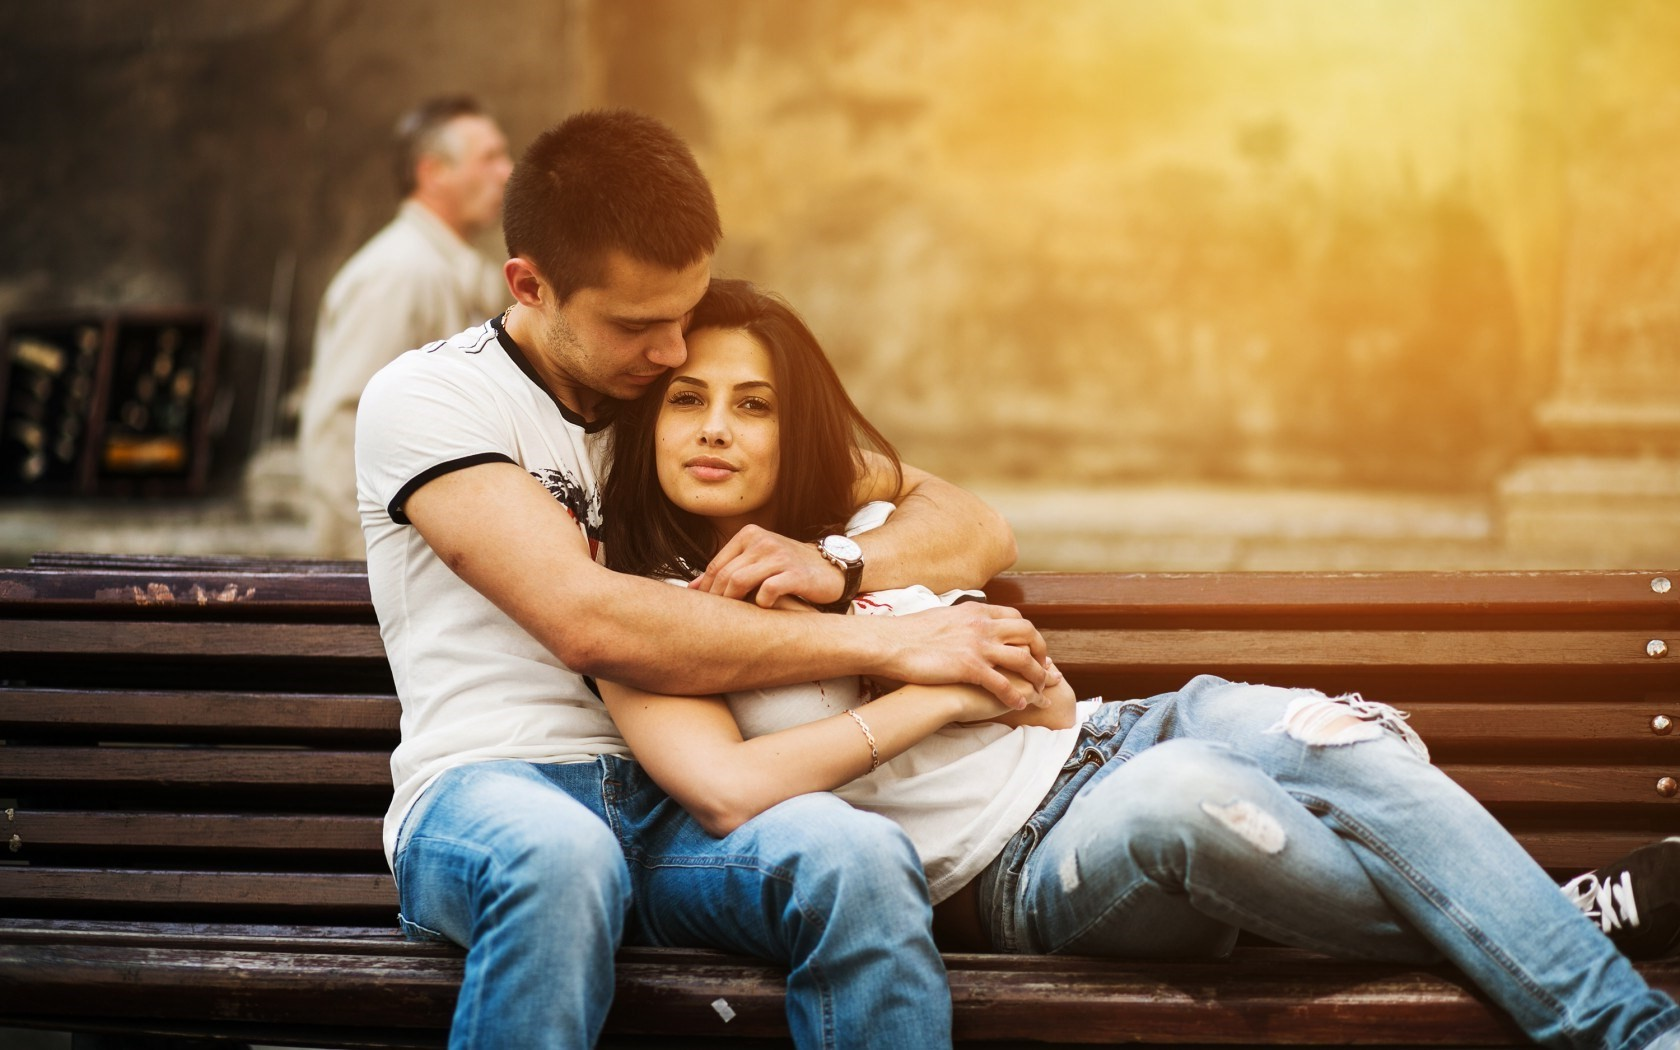 Couple Love Photography Quotes